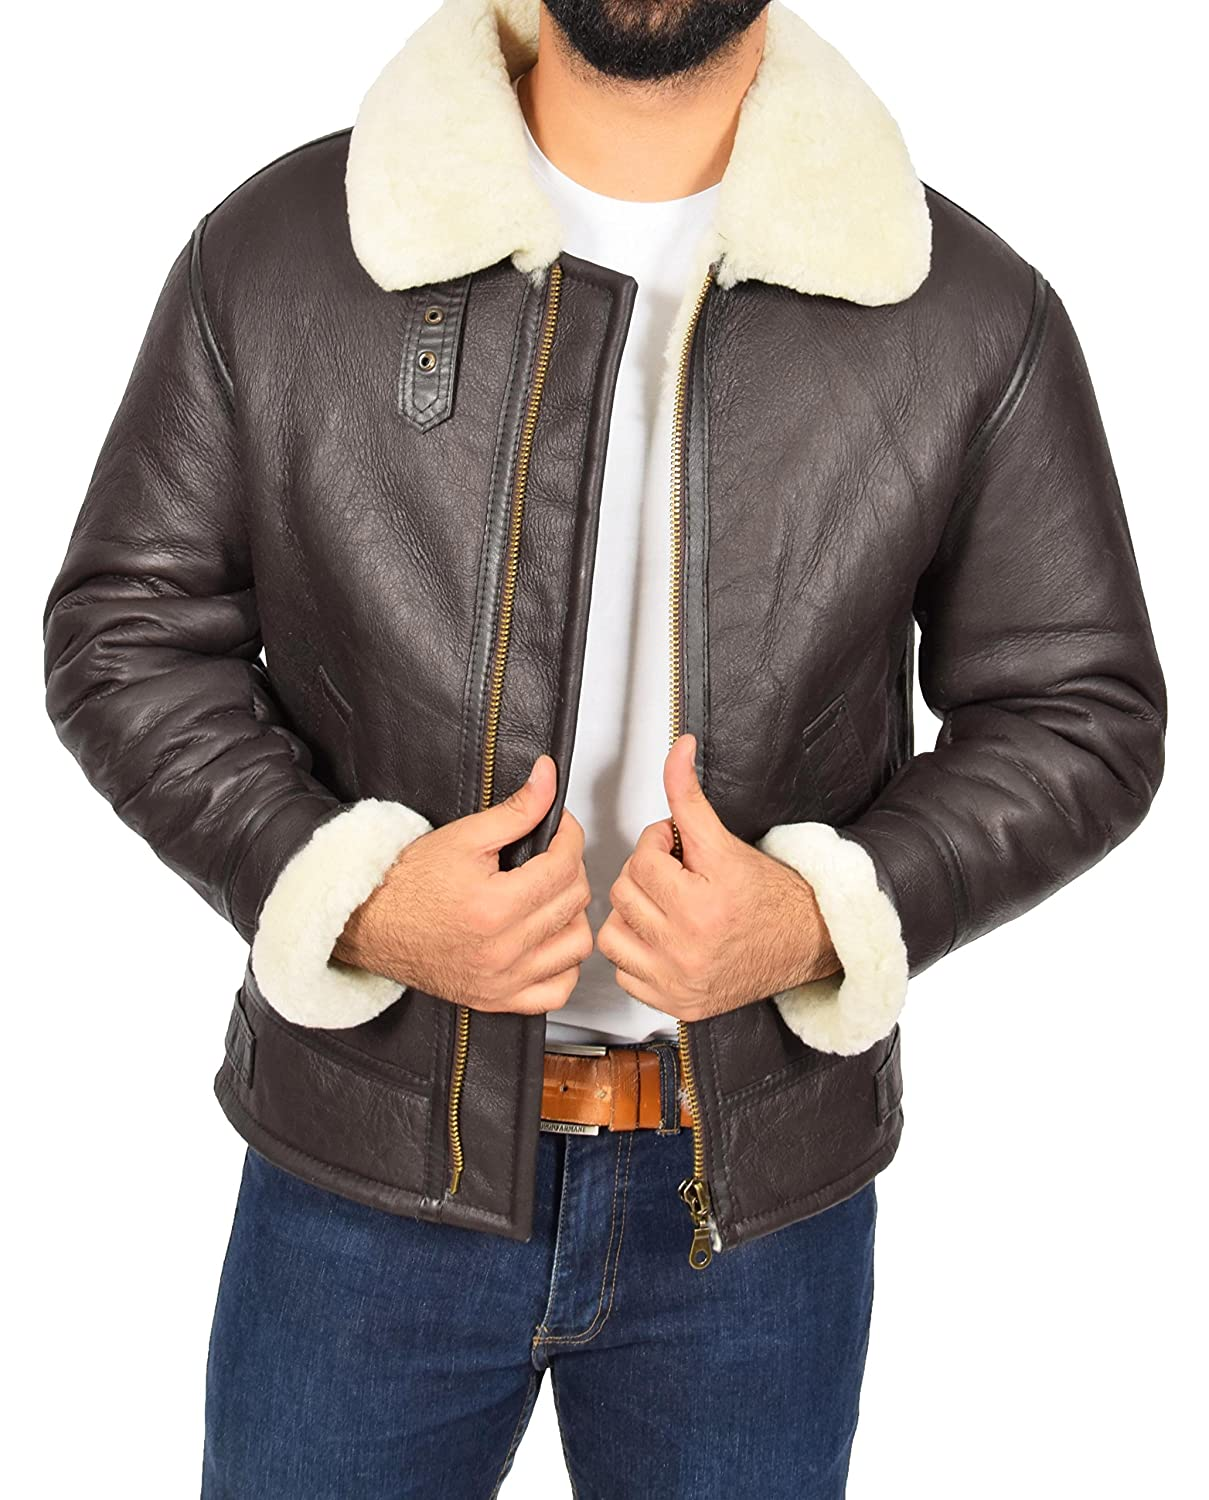 Mens Sheepskin Leather Jacket White Shearling Lined Top Gun Aviator Oscar Brown at Amazon Mens Clothing store: